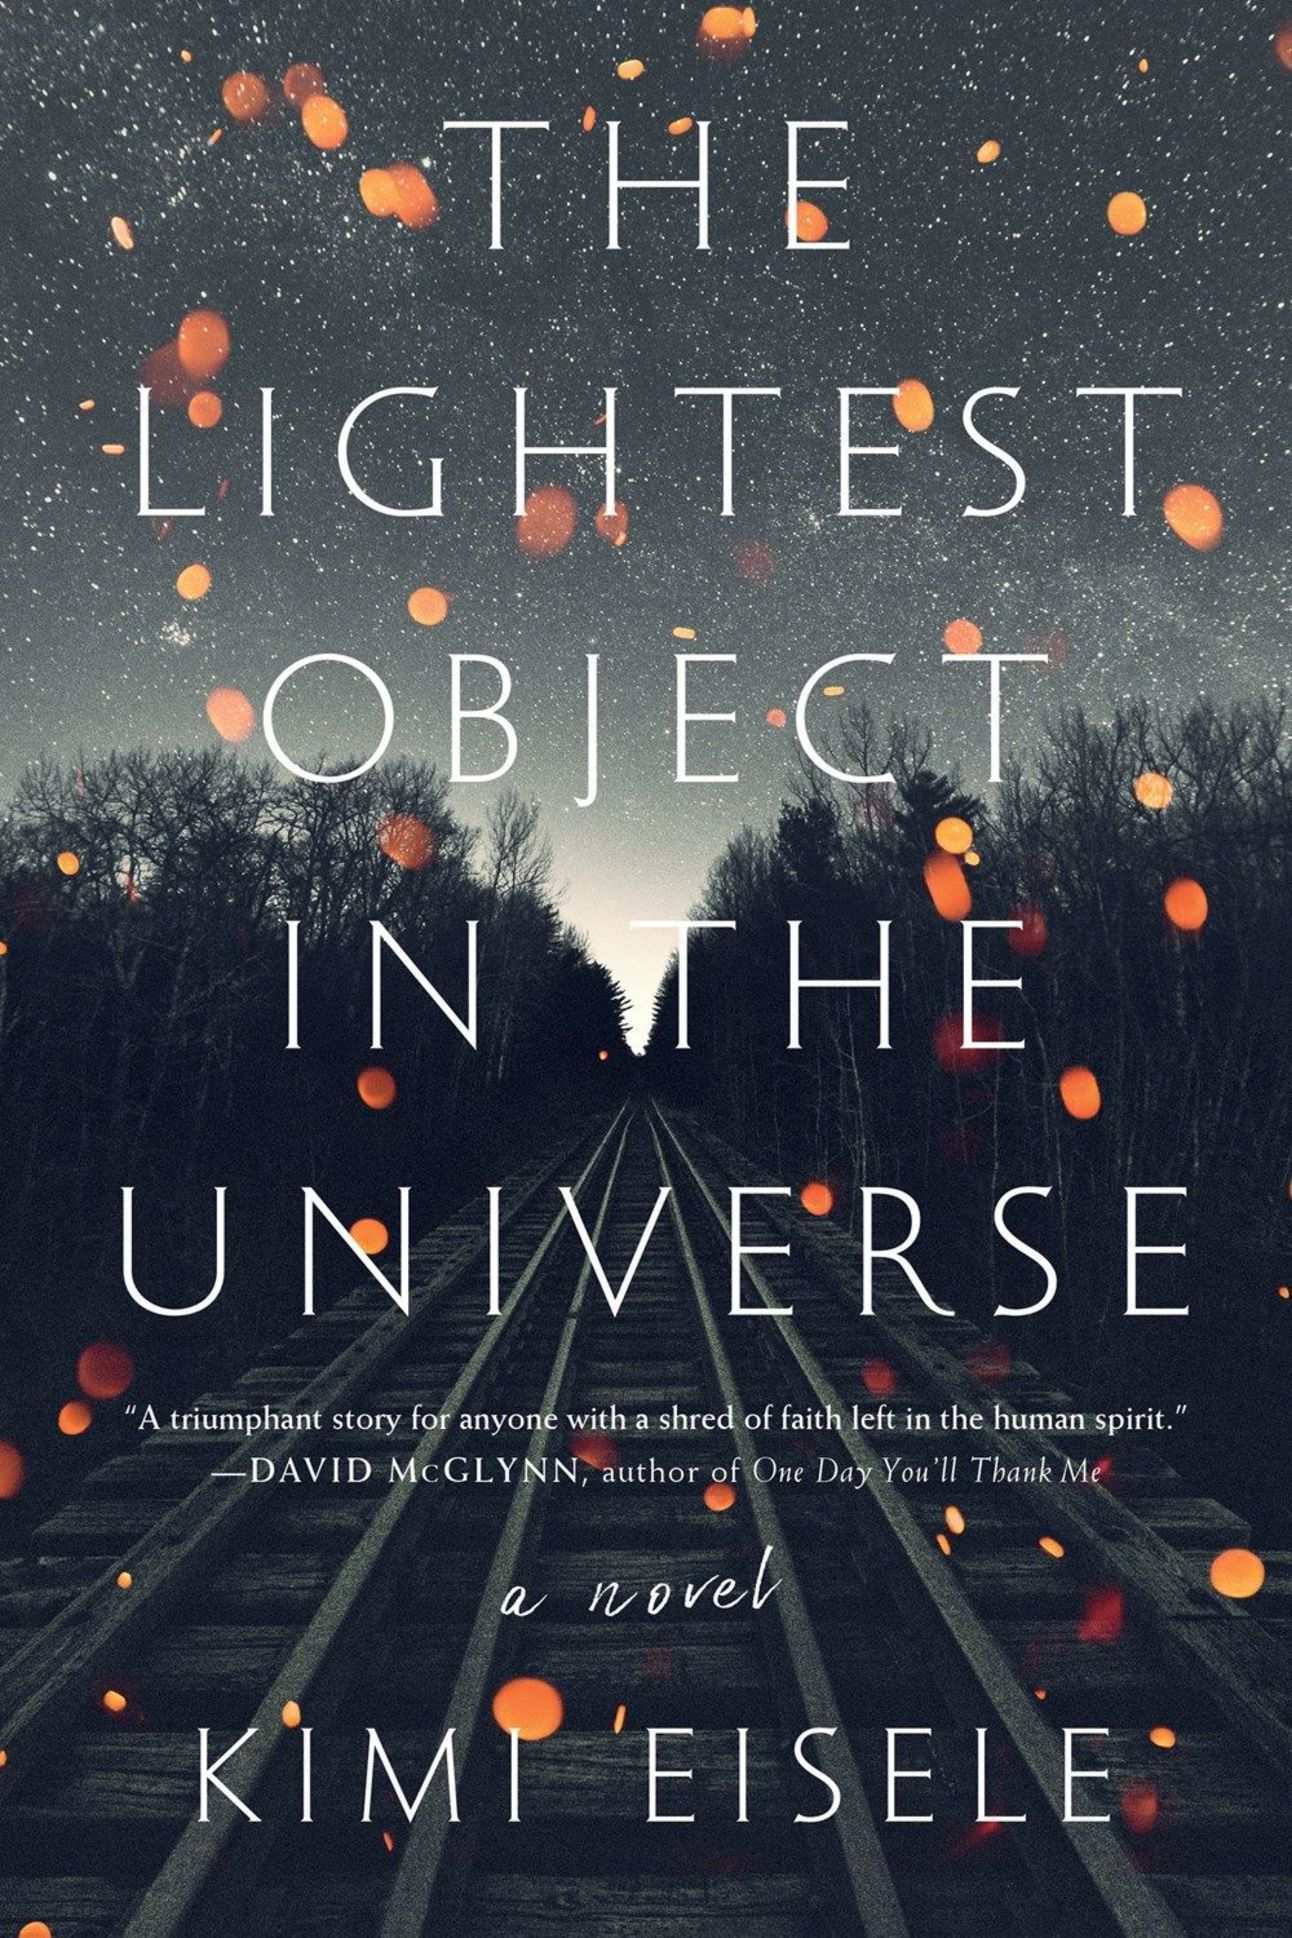 lightest-object-in-the-universe